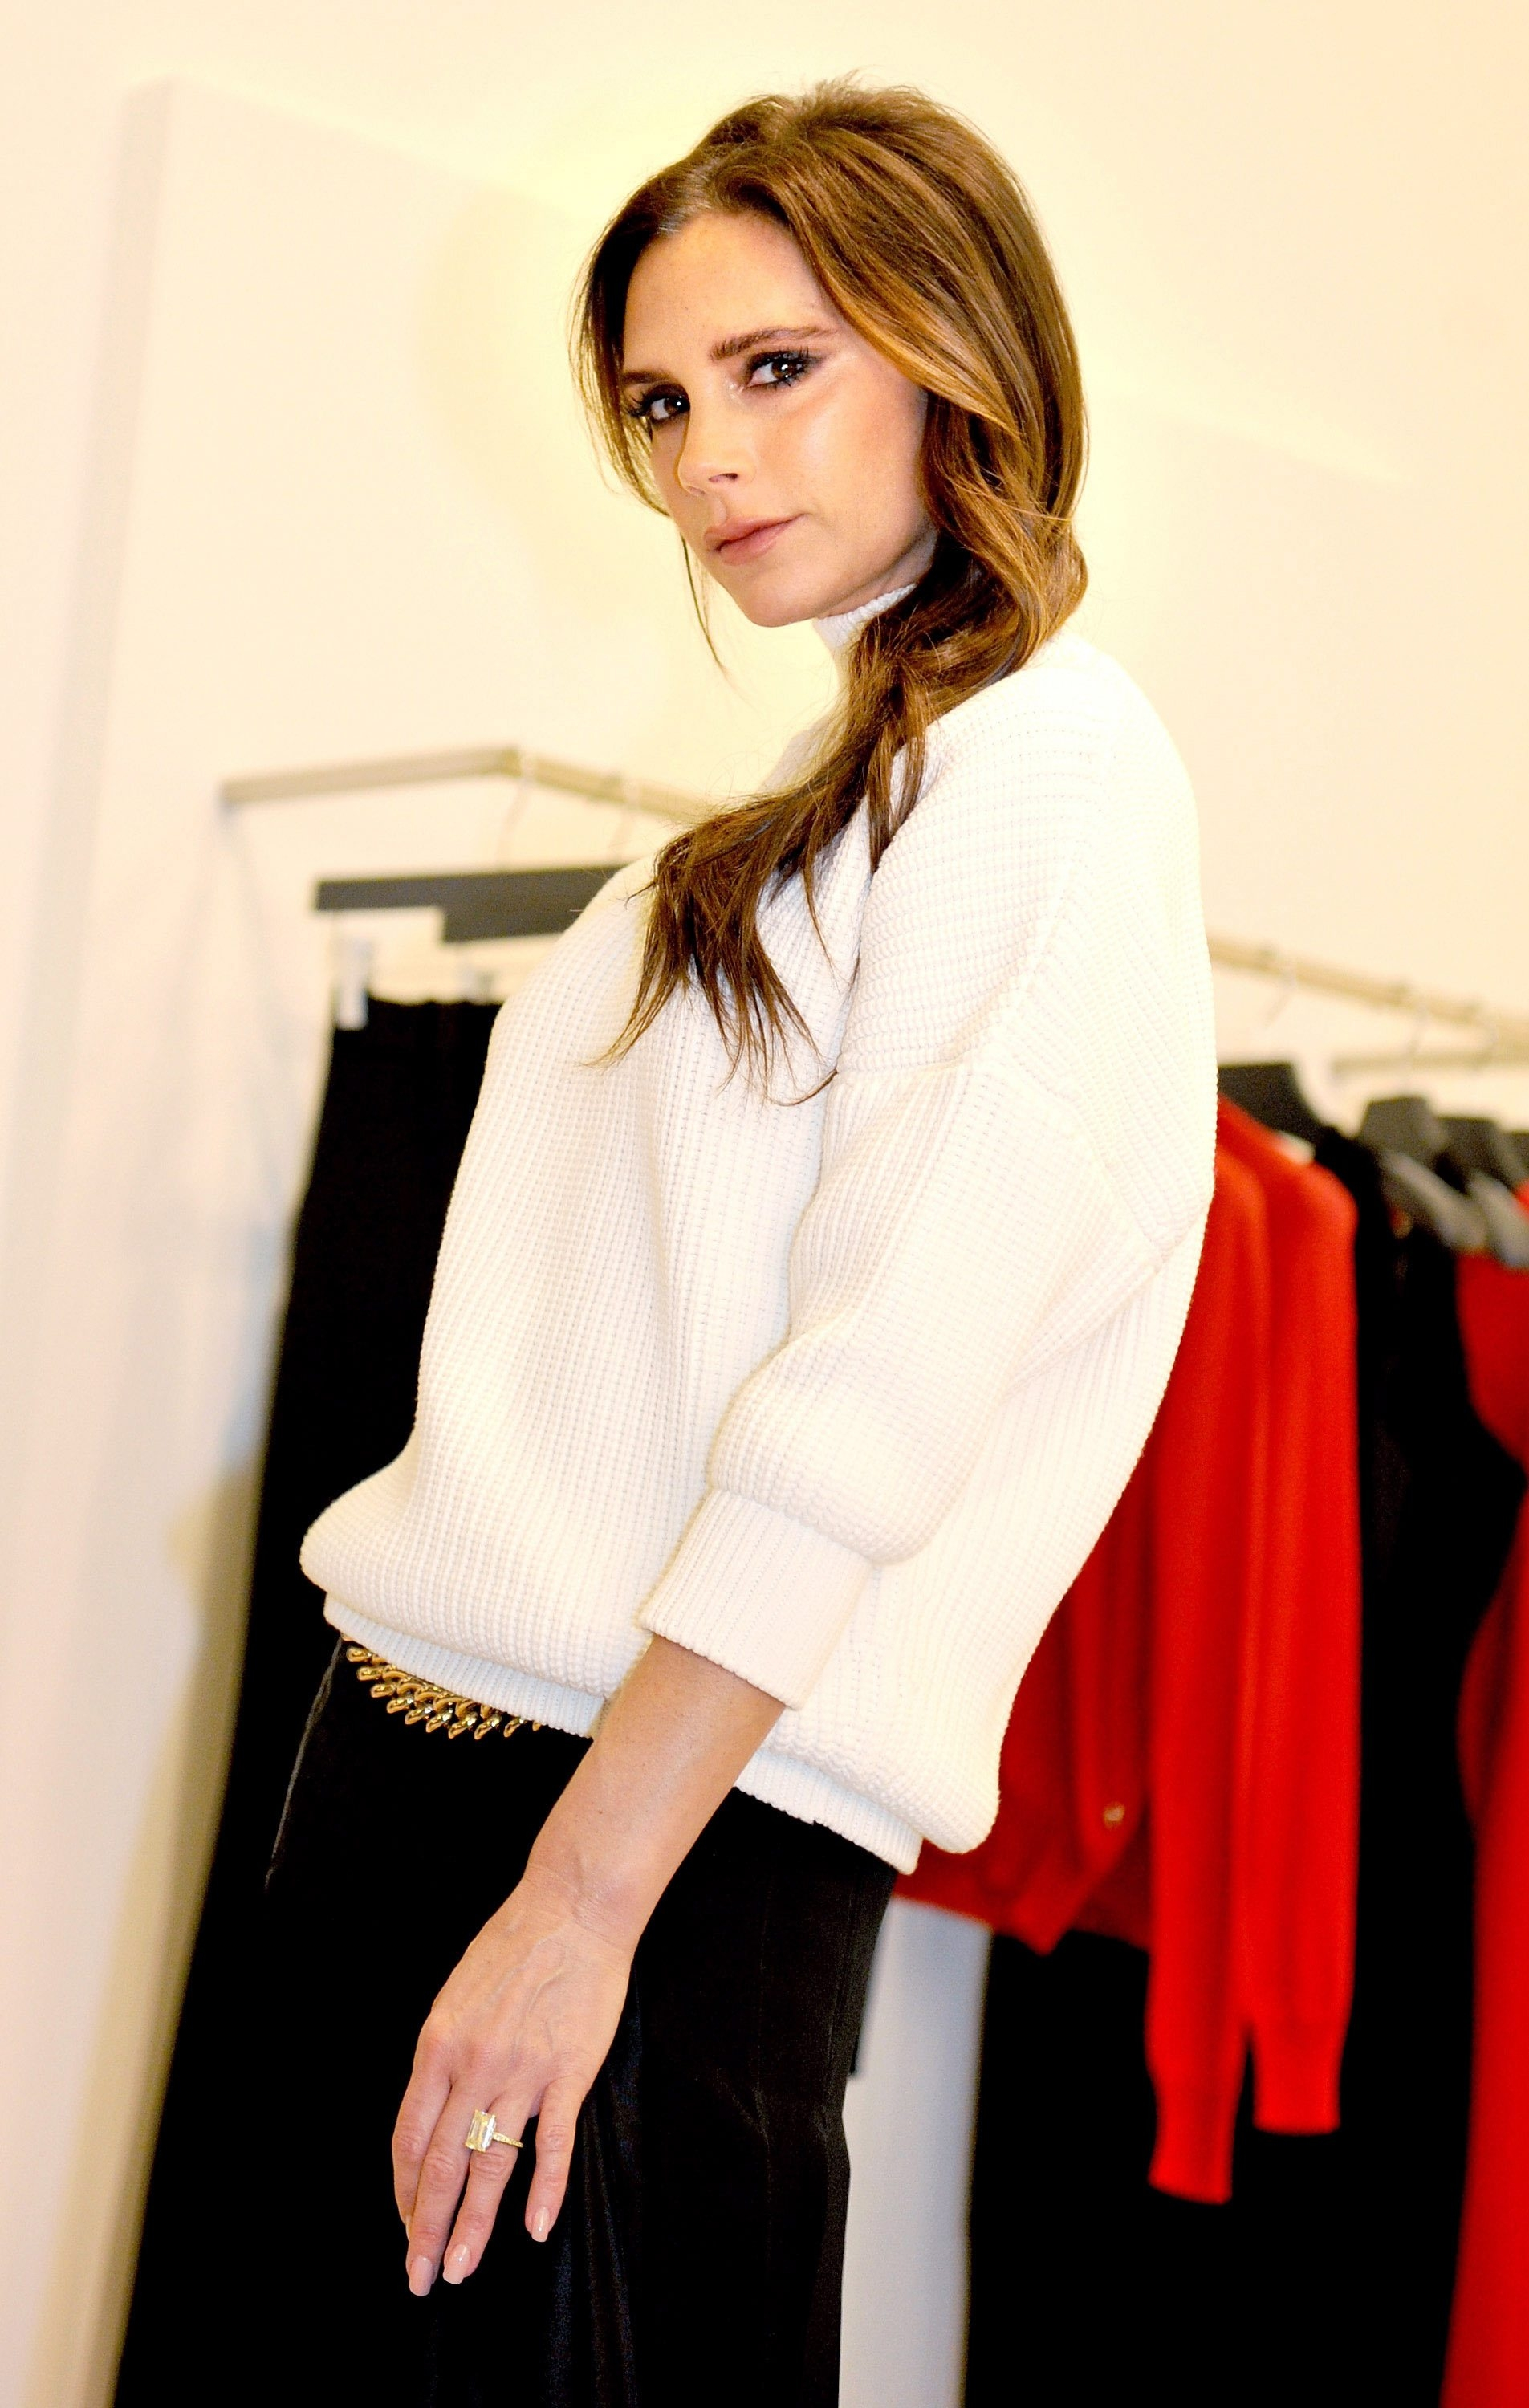 Victoria Beckham, photographed in England last November, presented her fall 2015 collection during the recent New York Fashion Week.